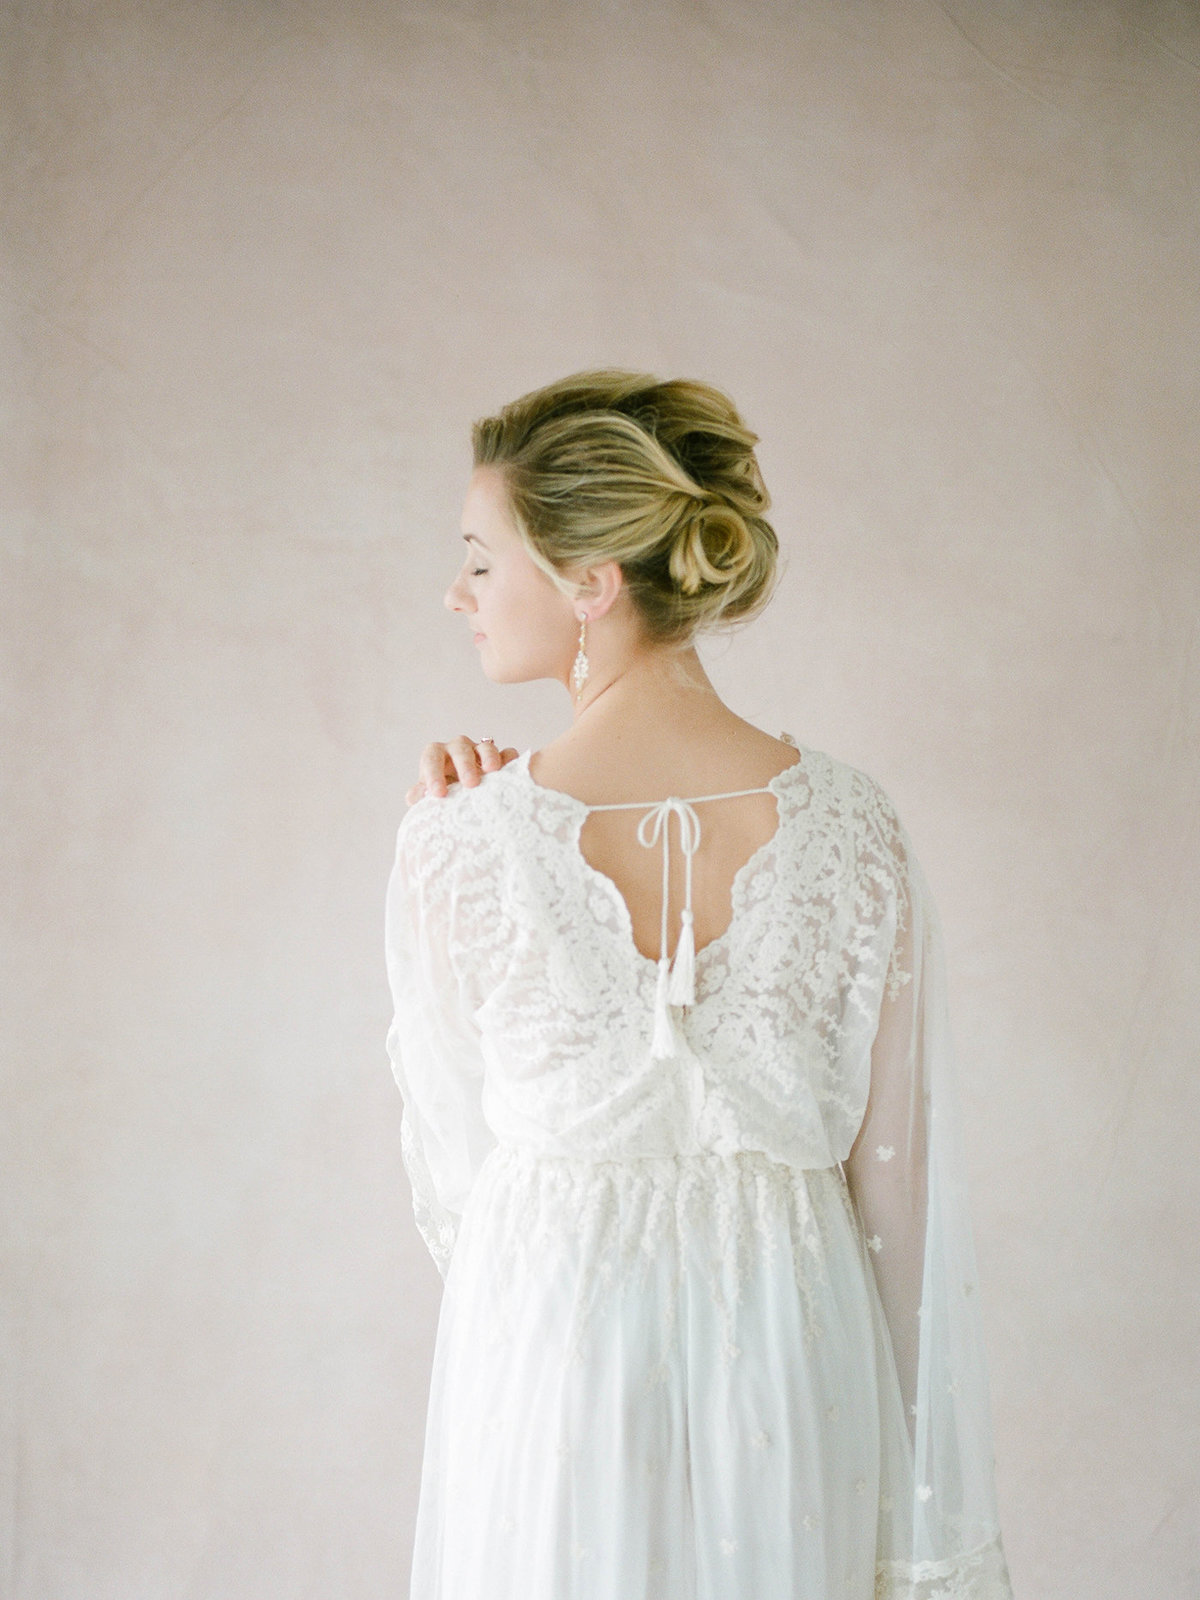 Fine Art Bridal Portraits - Sarah Sunstrom Photography - Film Wedding Photographer - 28